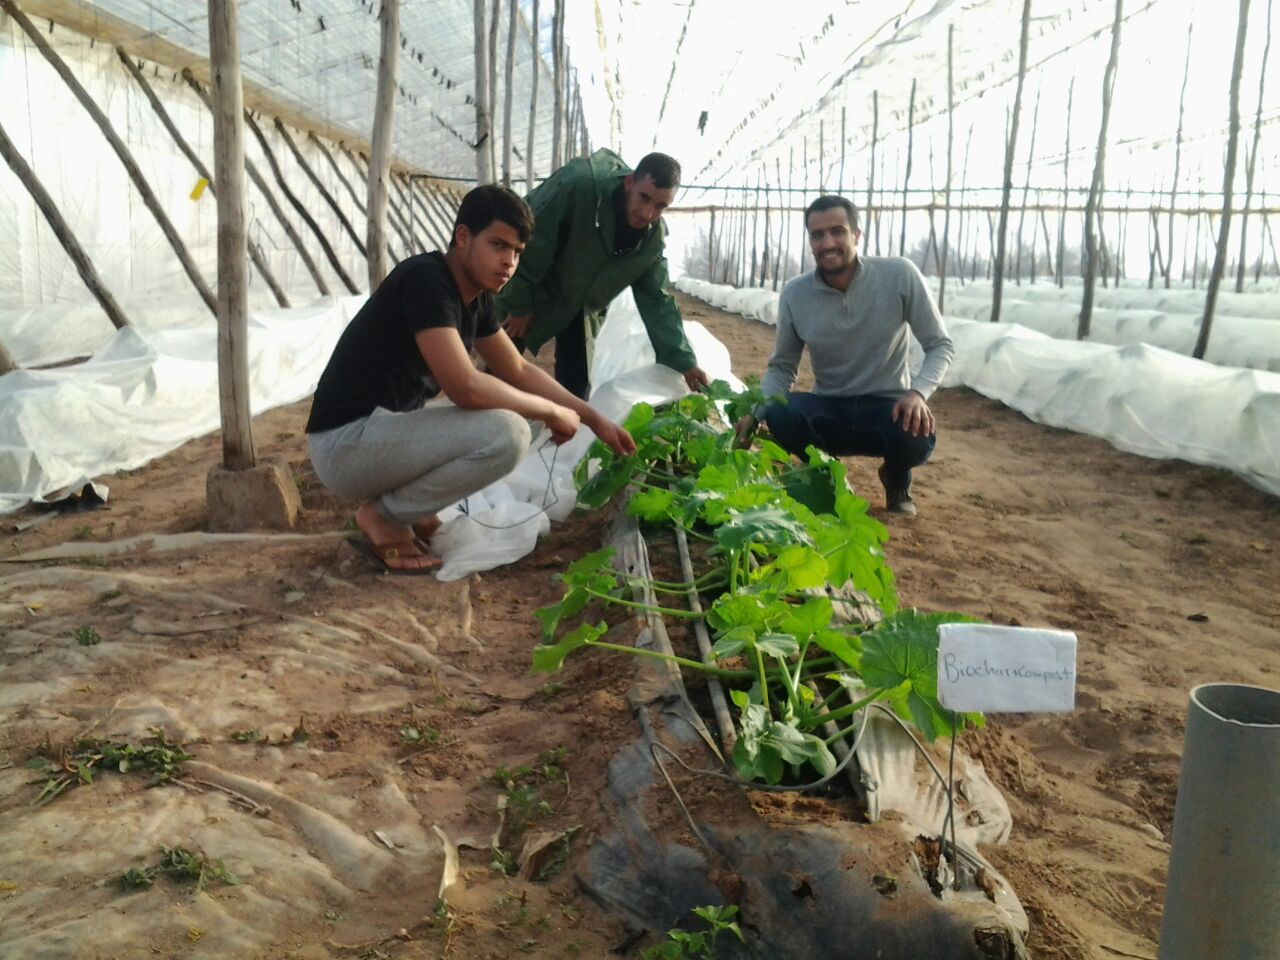 One Moroccan entrepreneur is changing the way farmers look at organic waste | The Switchers